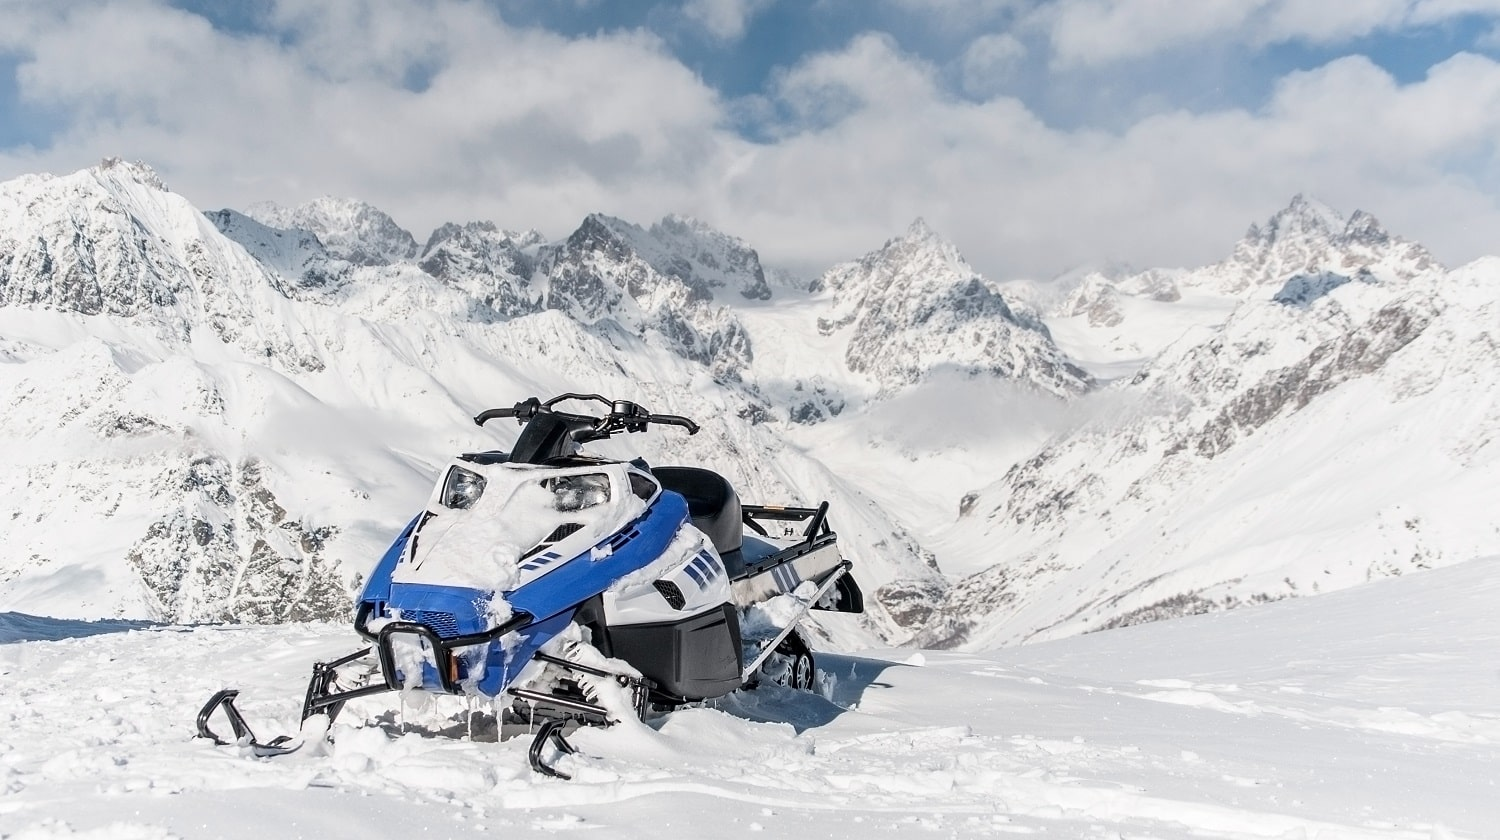 Modern blue snowmobile against the scenic background of high snow mountains peaks and cloudy sky